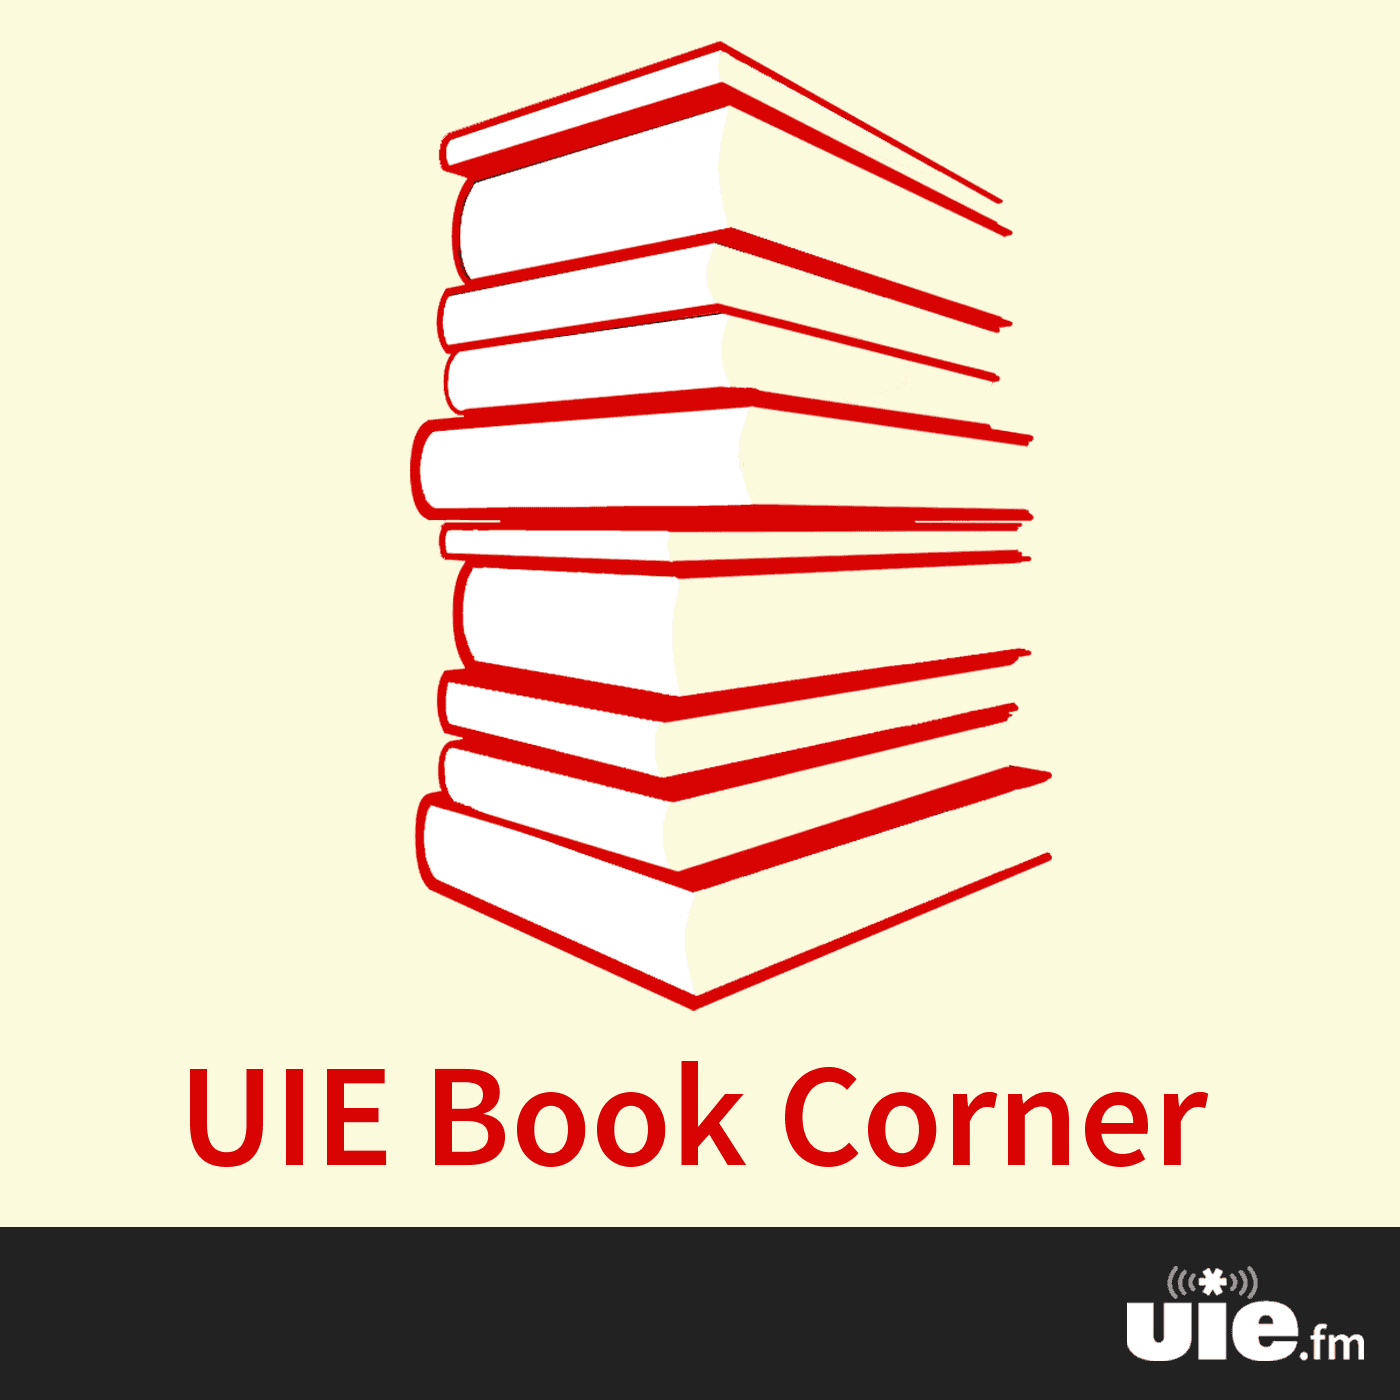 Album art of UIE Book Corner